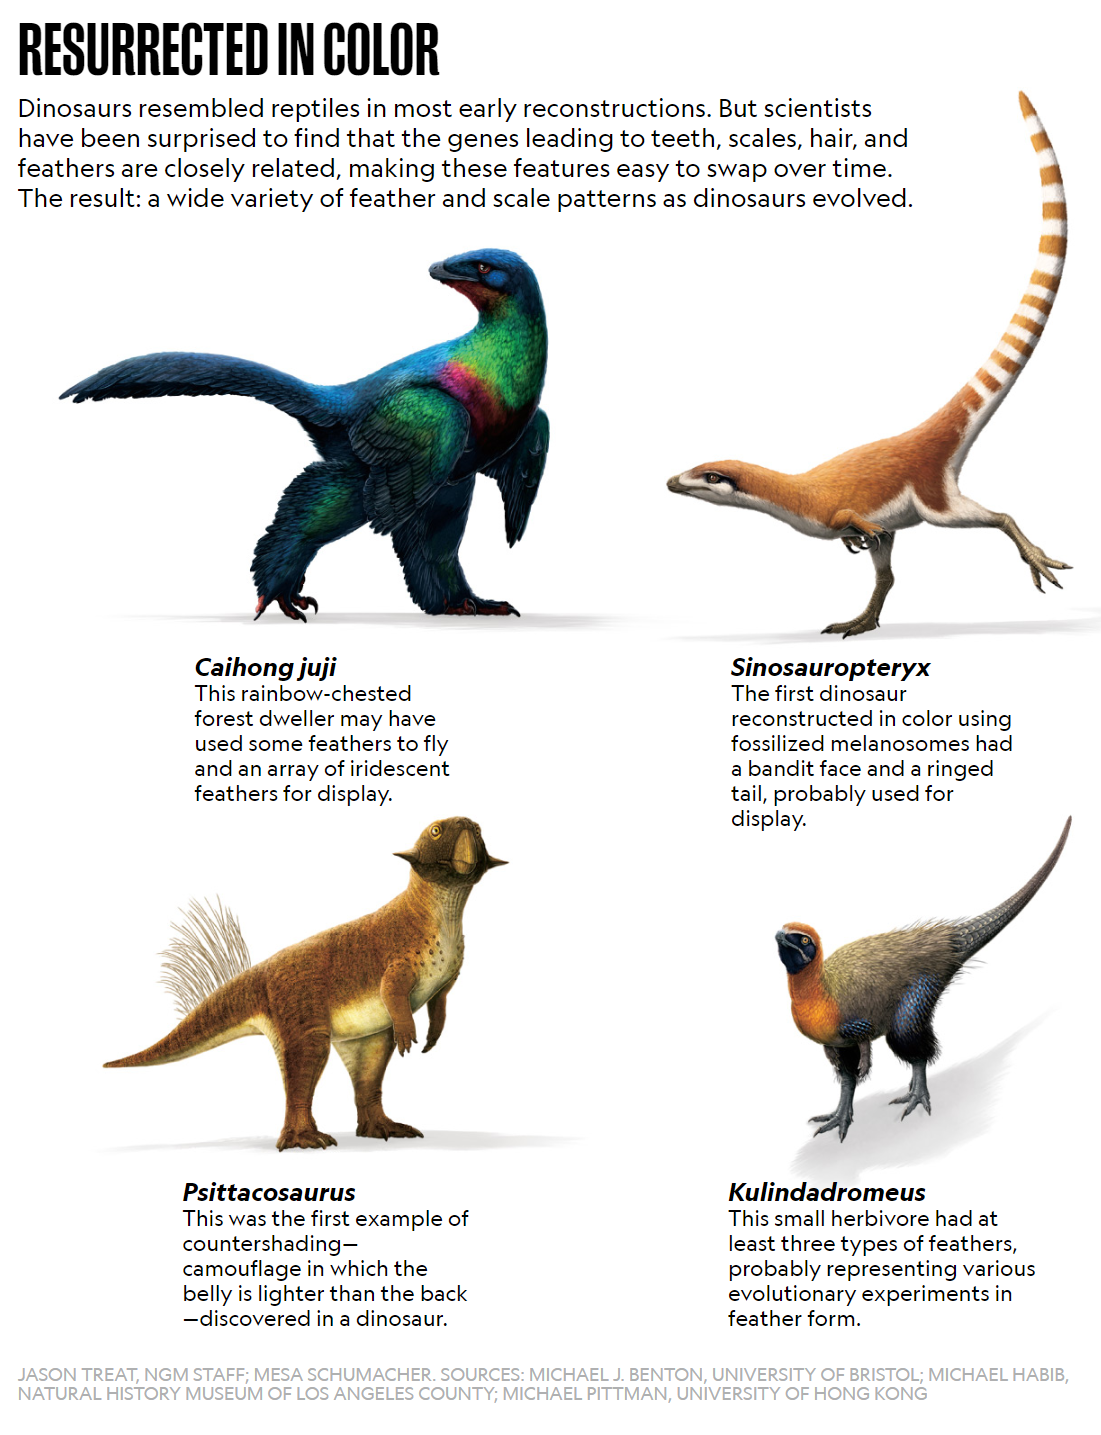 four dinosaurs covered in feathers